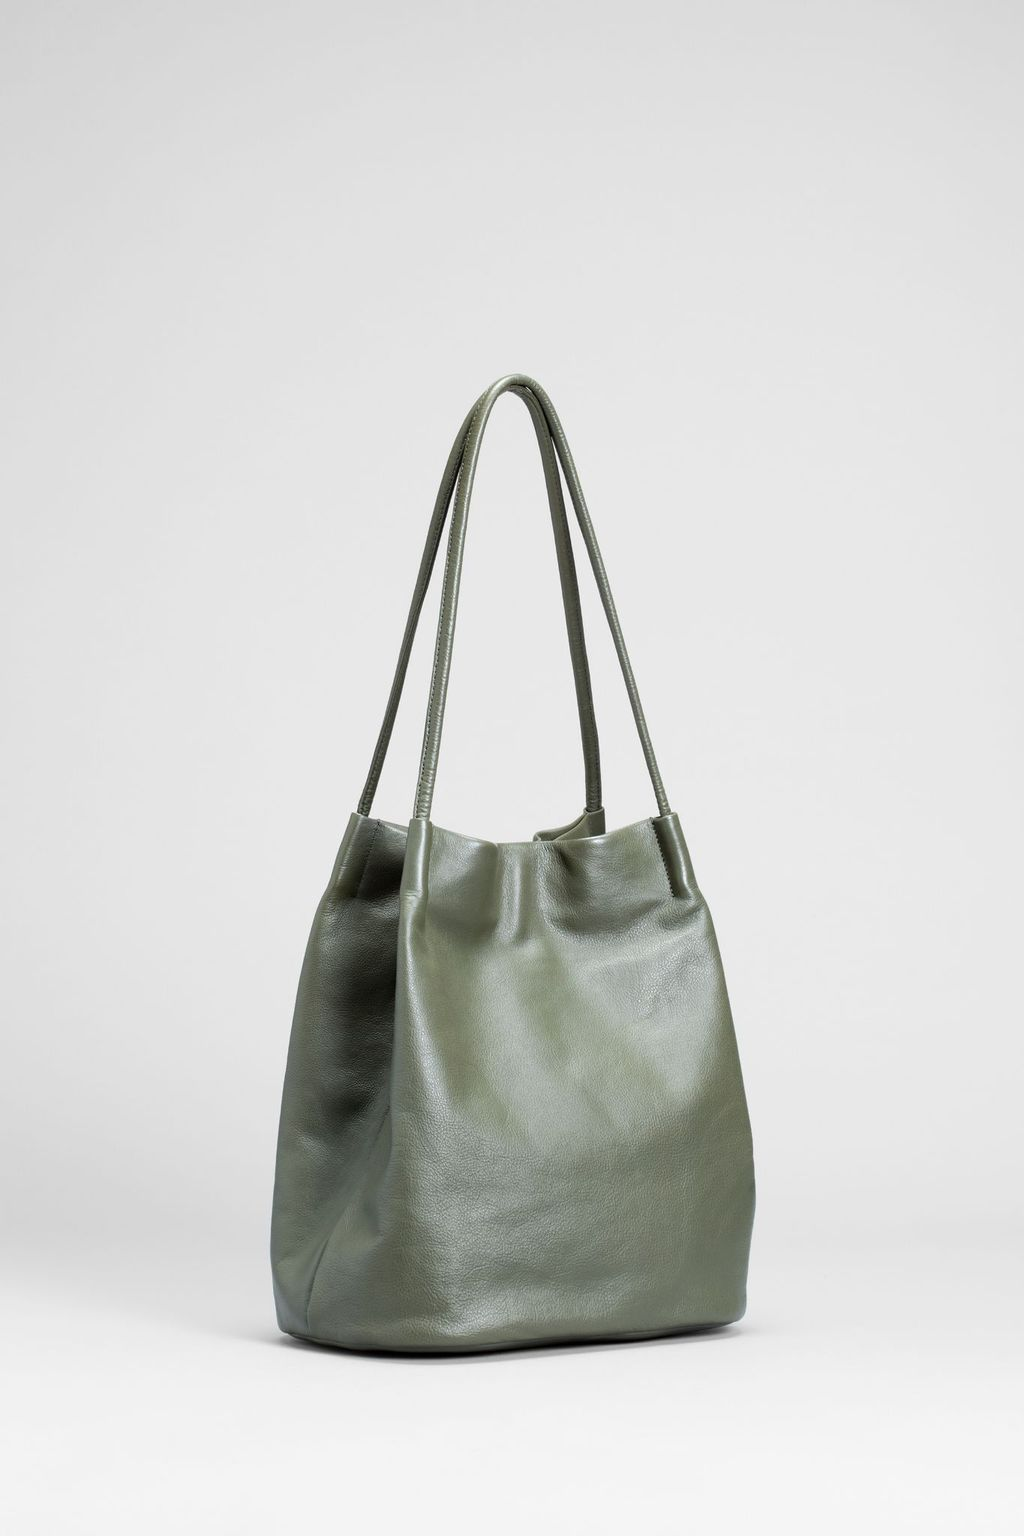 Elk Orsa Bag G0951 Loden Green